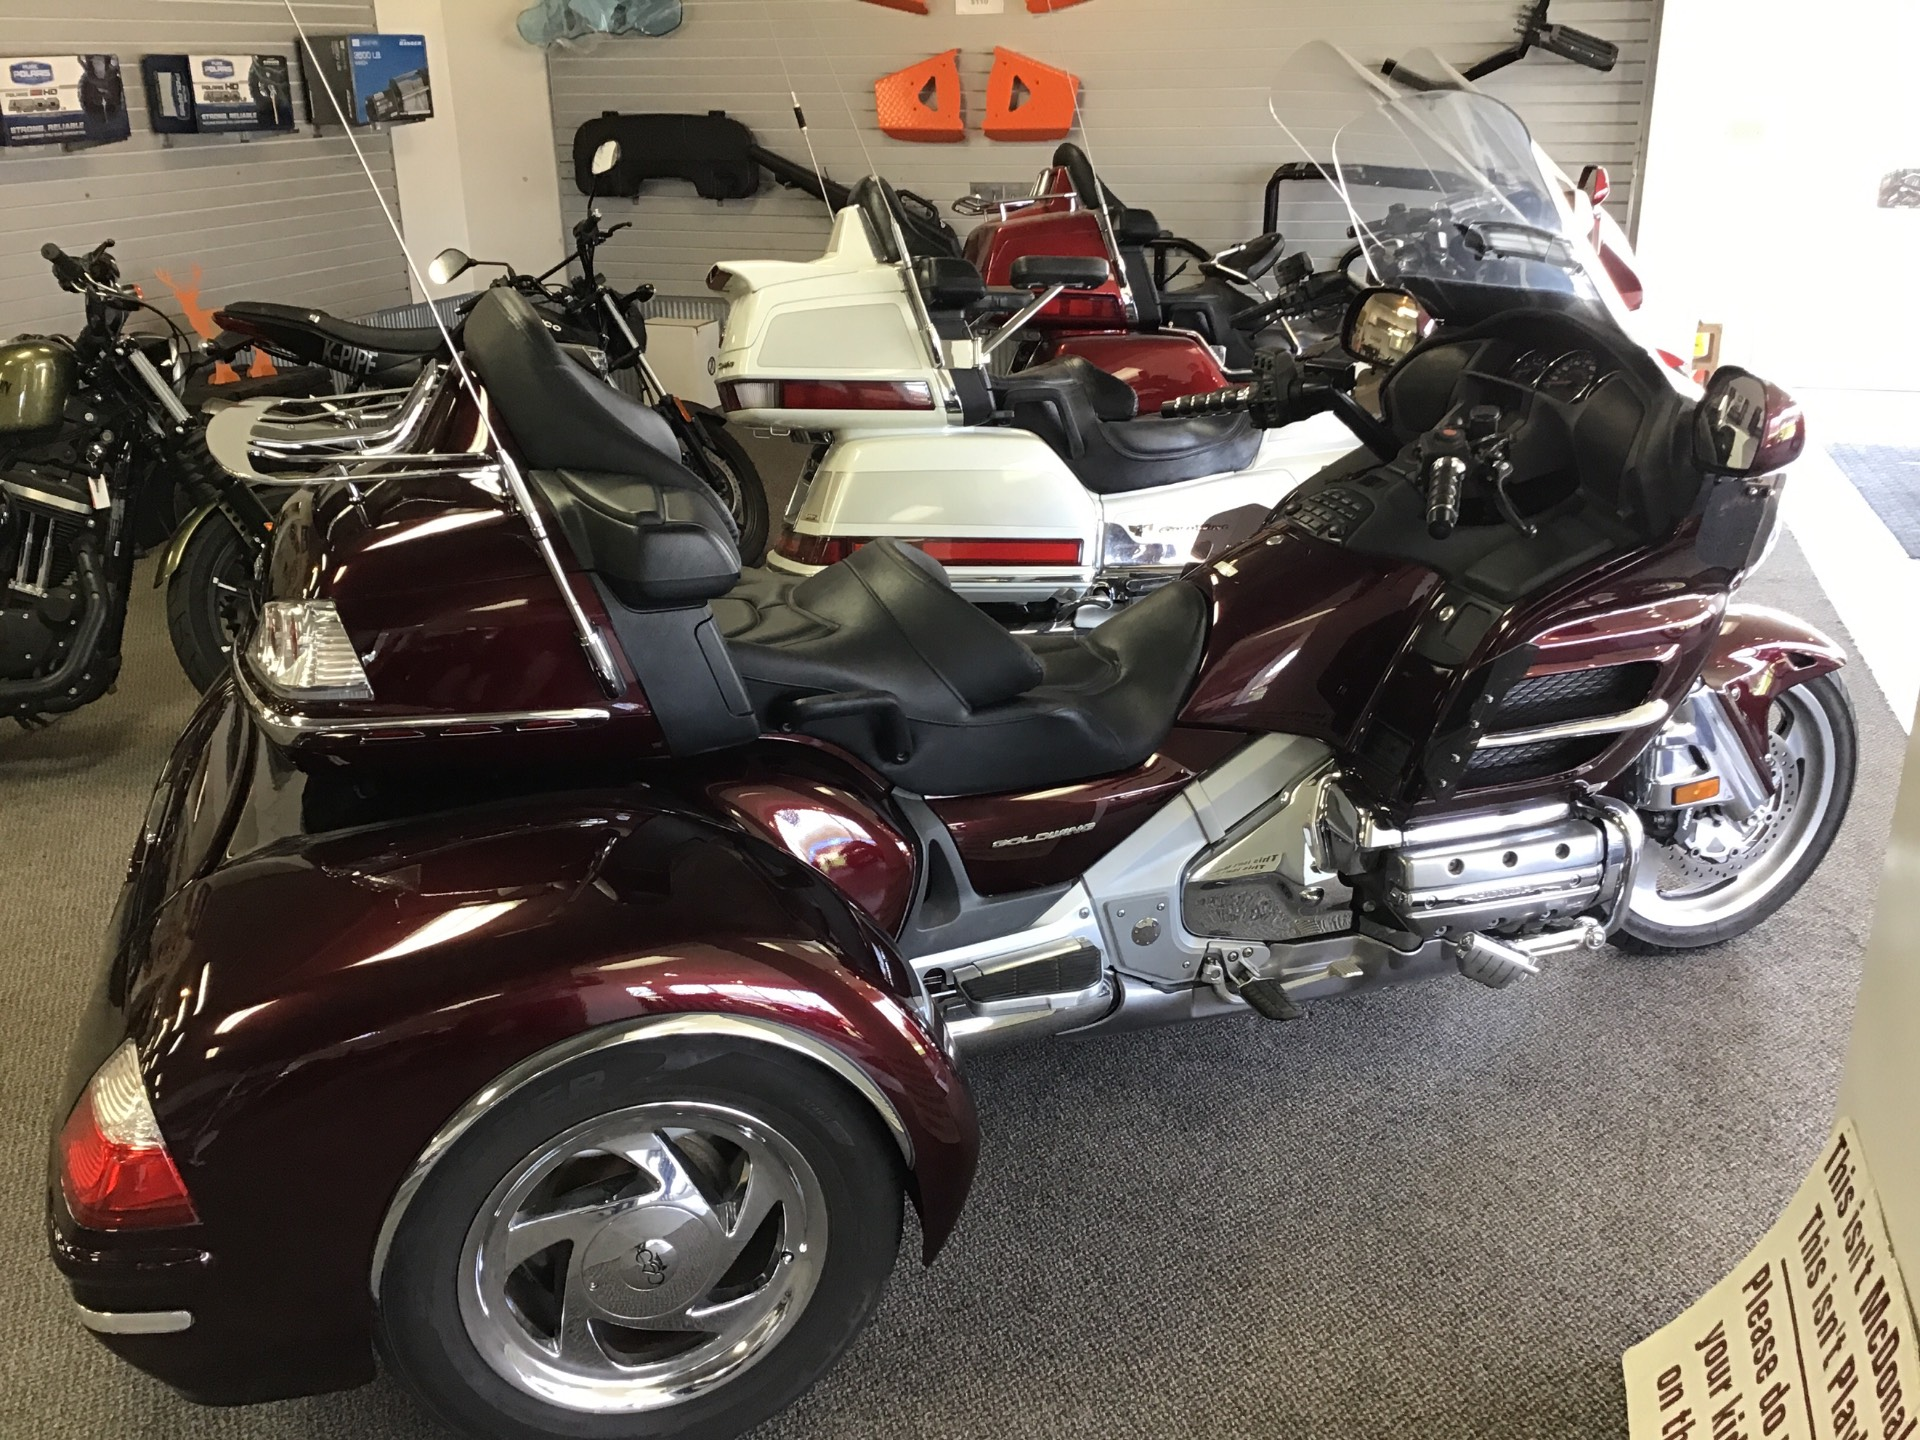 2006 Honda Goldwing Cobra XL Trike Conversion in Sterling, Illinois - Photo 2